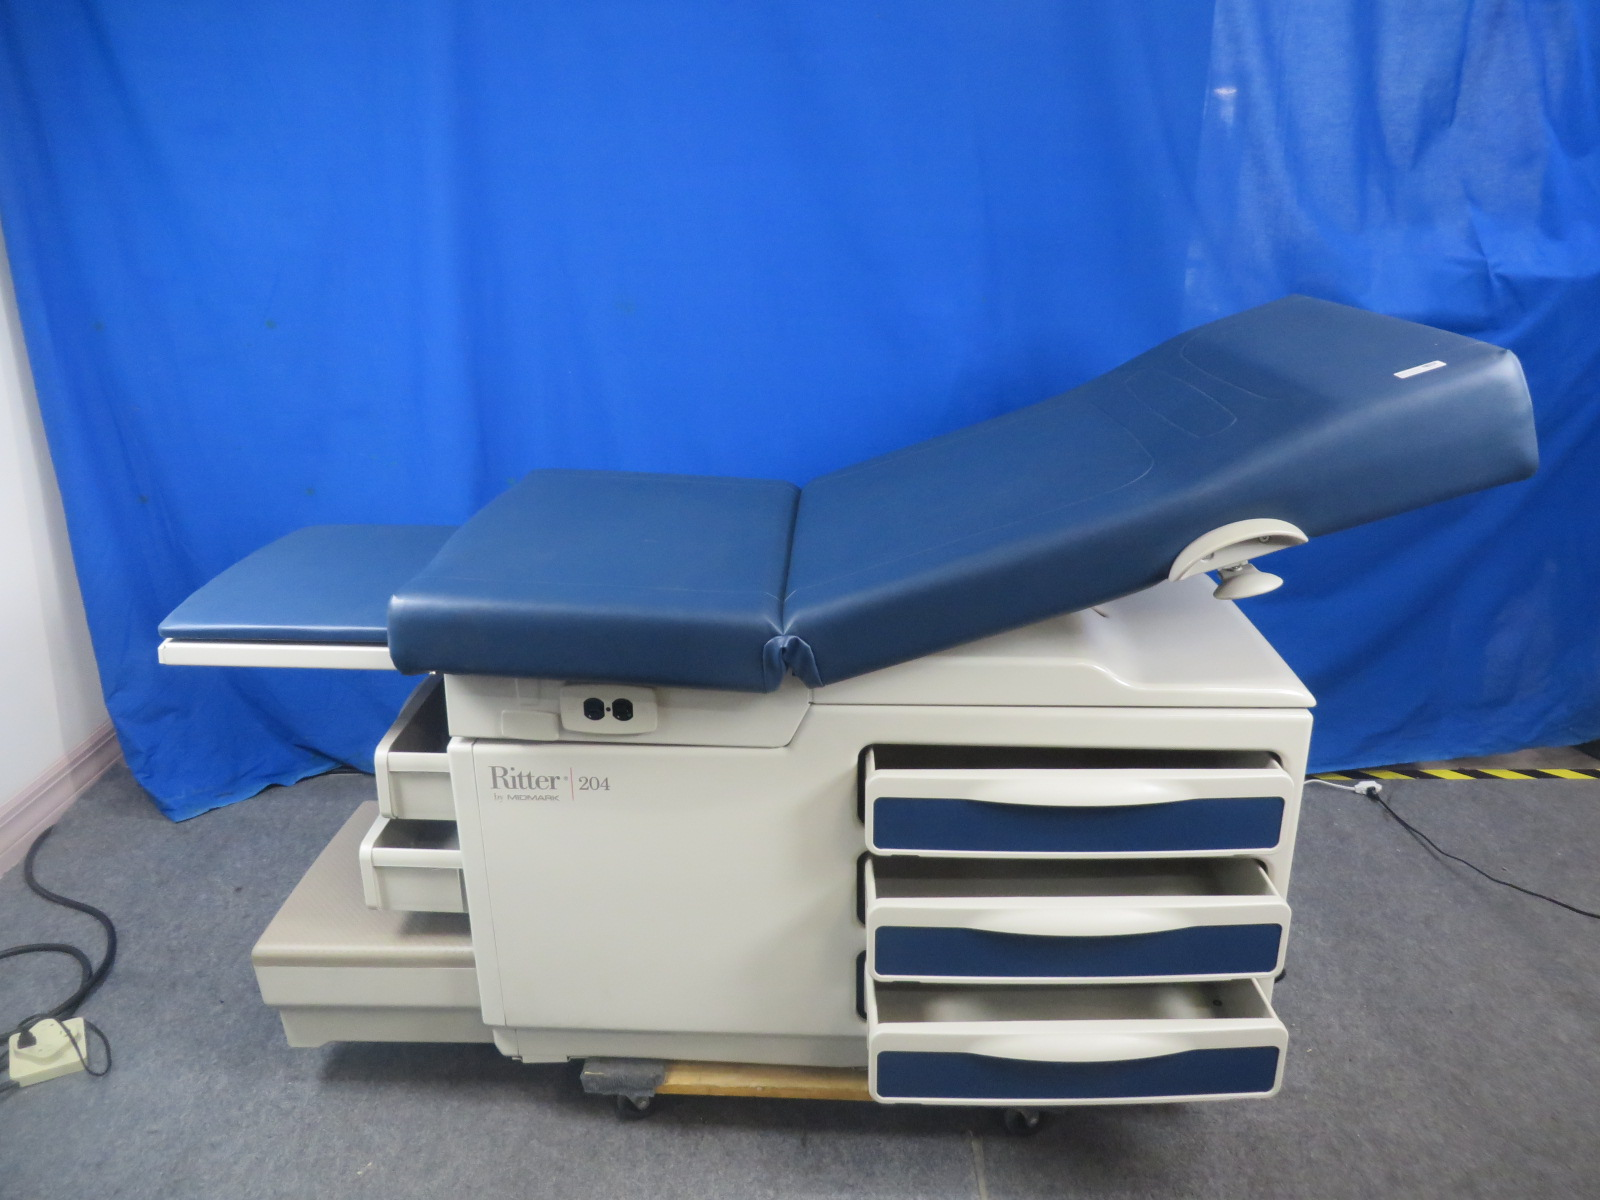 Midmark Ritter 204 Obgyn Exam Table Blue 90 Day Warranty